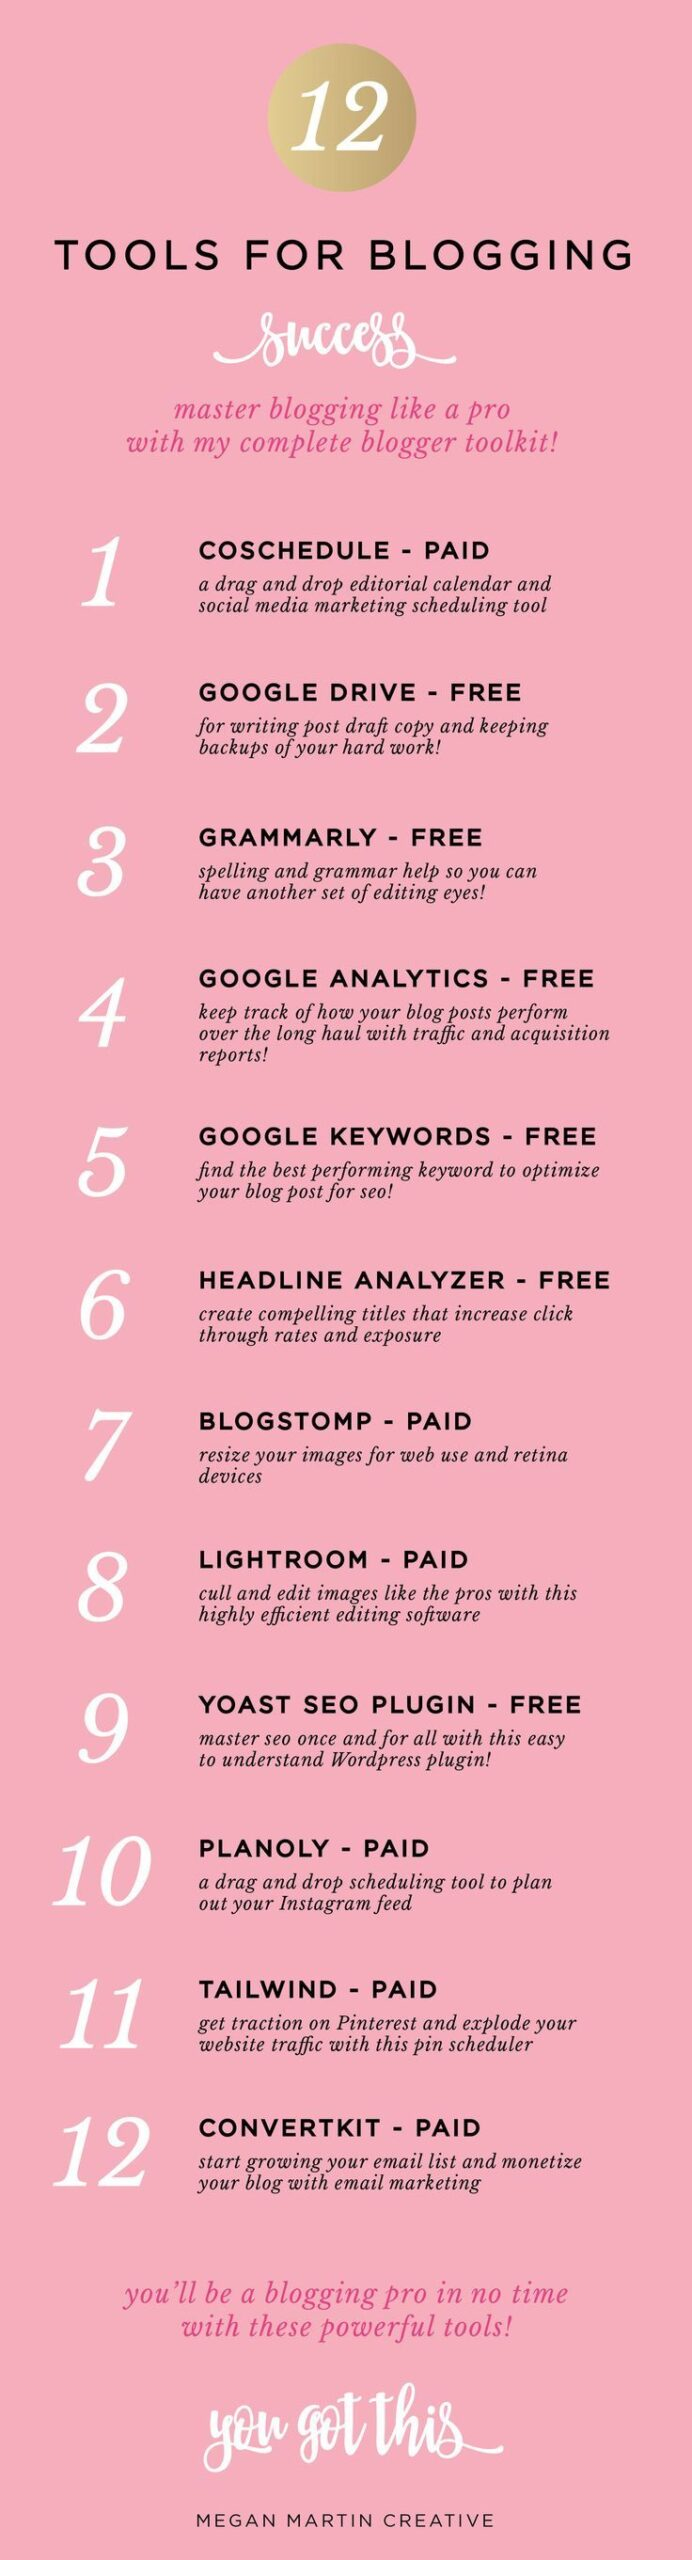 The Best Tools for Blogging Success You Need Now - Megan Martin Creative   Website Designer and Conversion Strategist